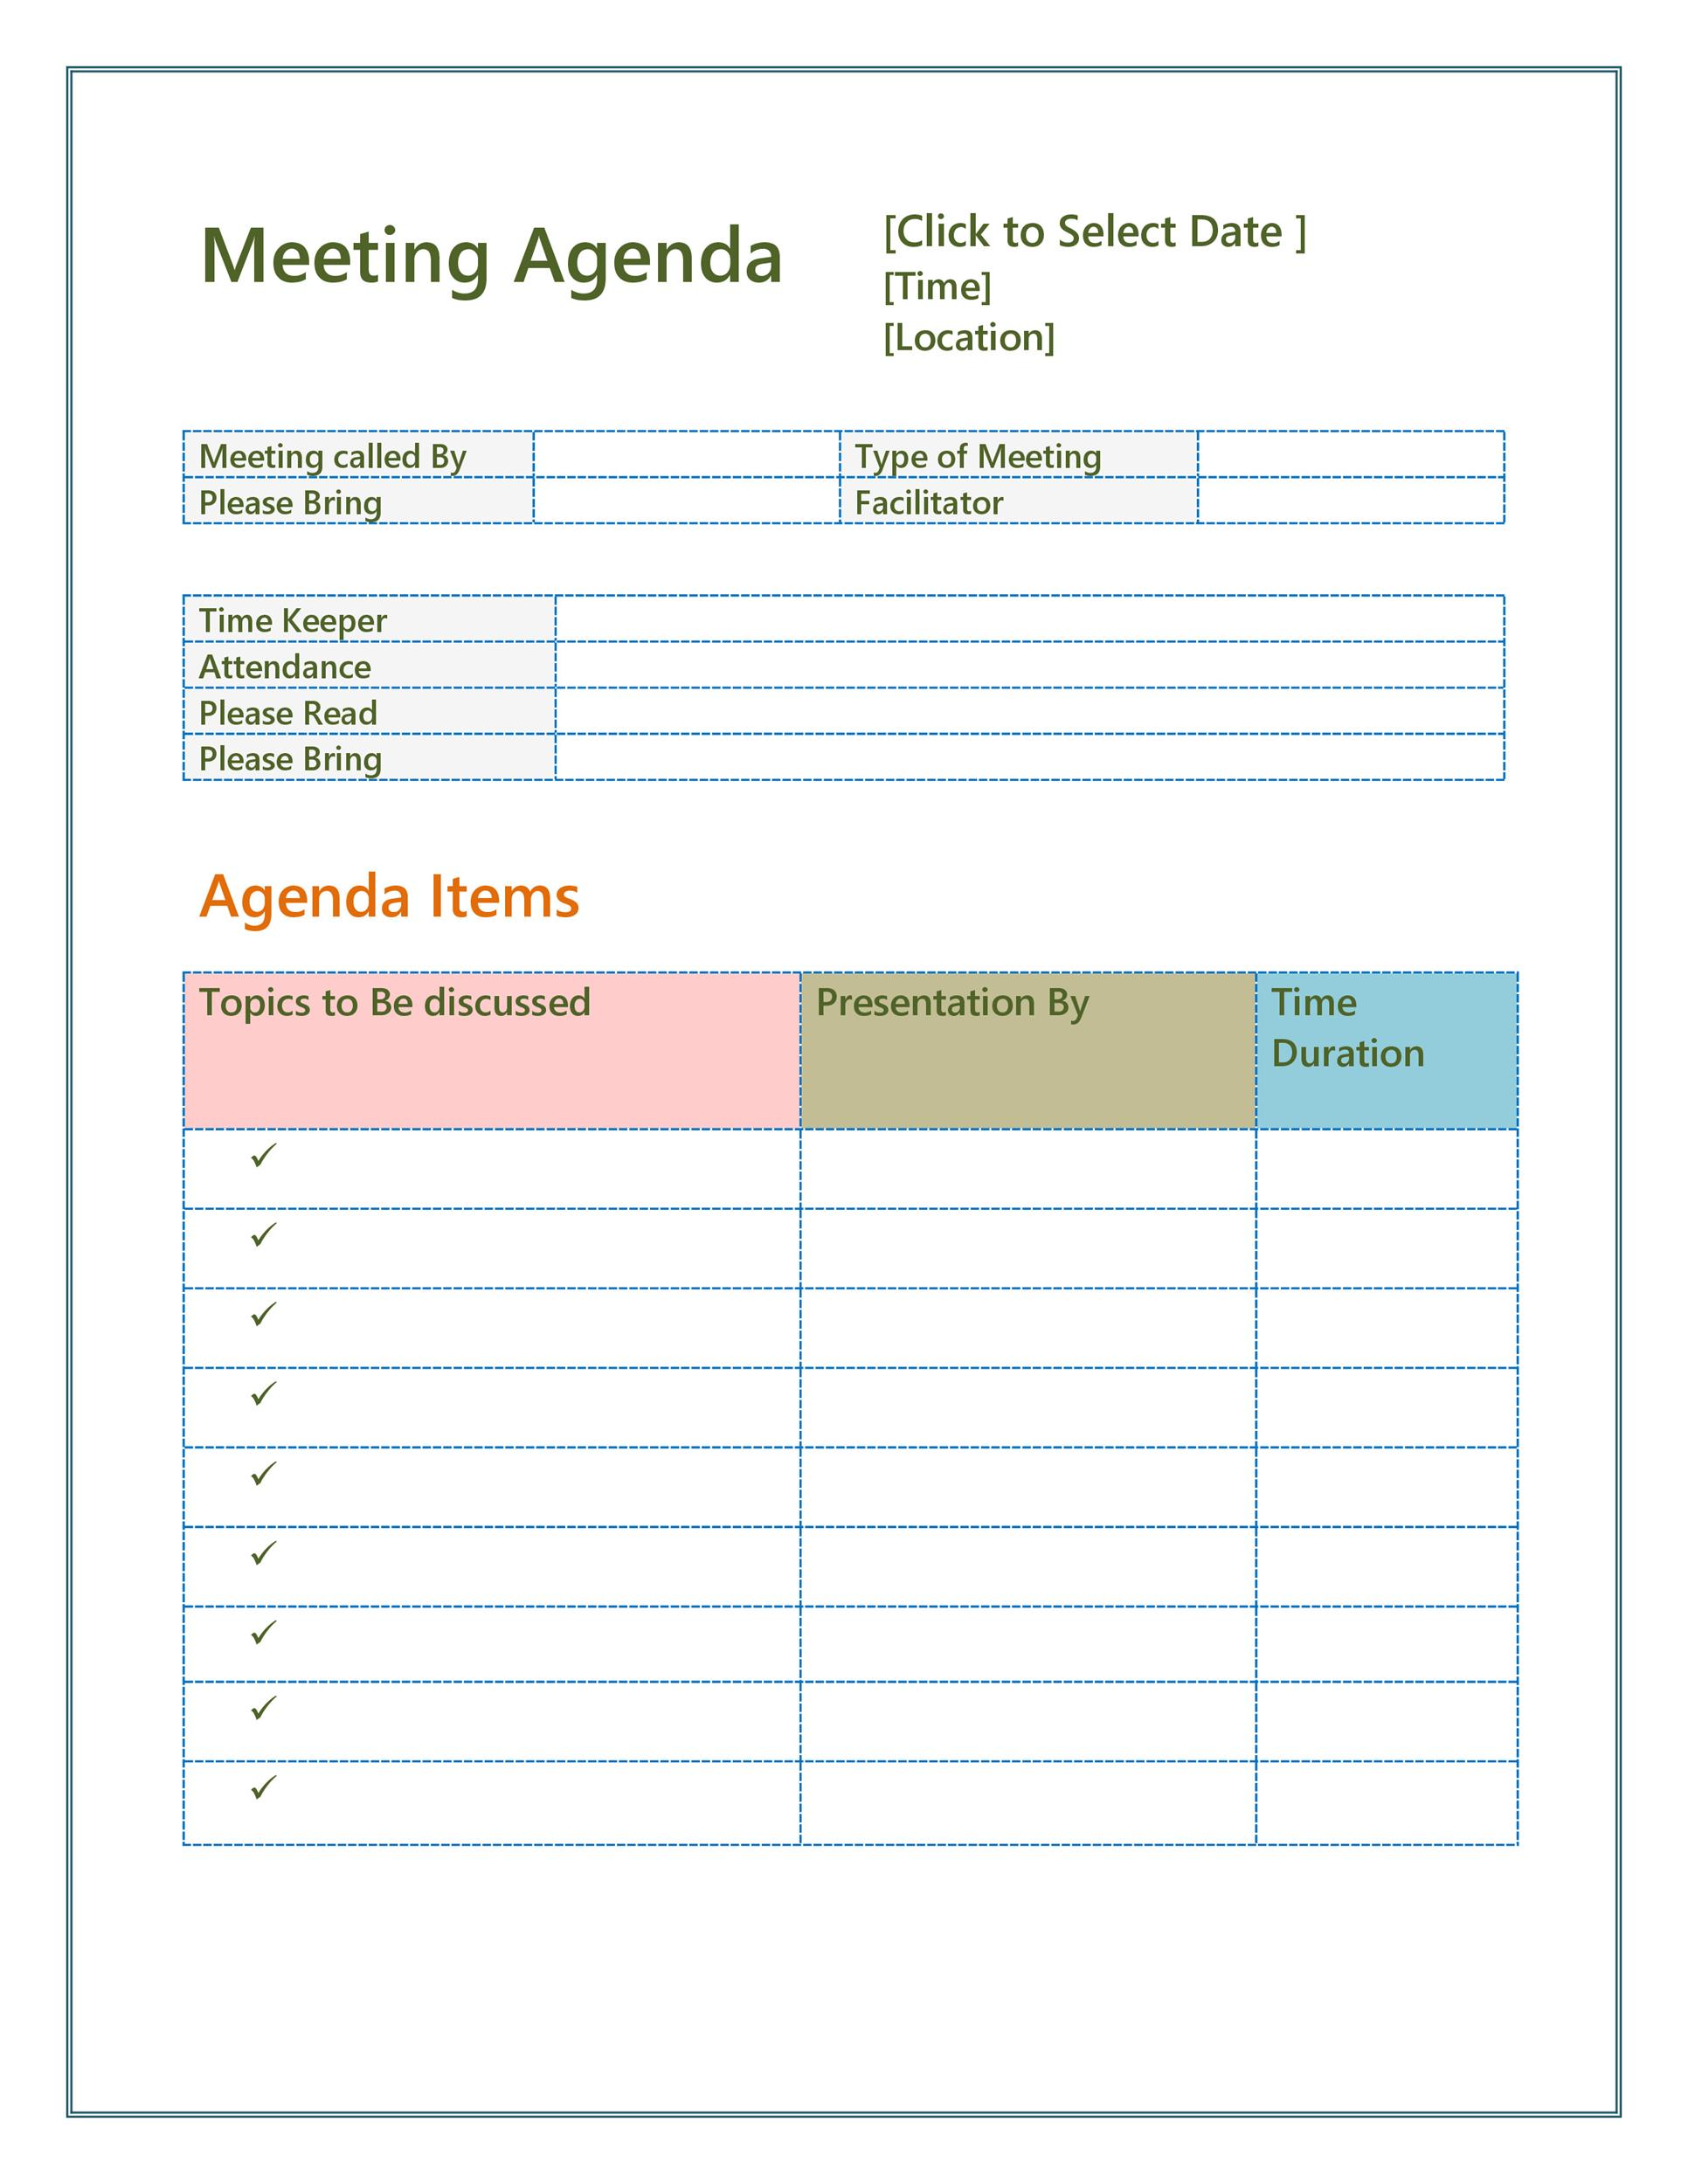 Meeting Agenda Template Word  Microsoft Word Meeting Agenda Template